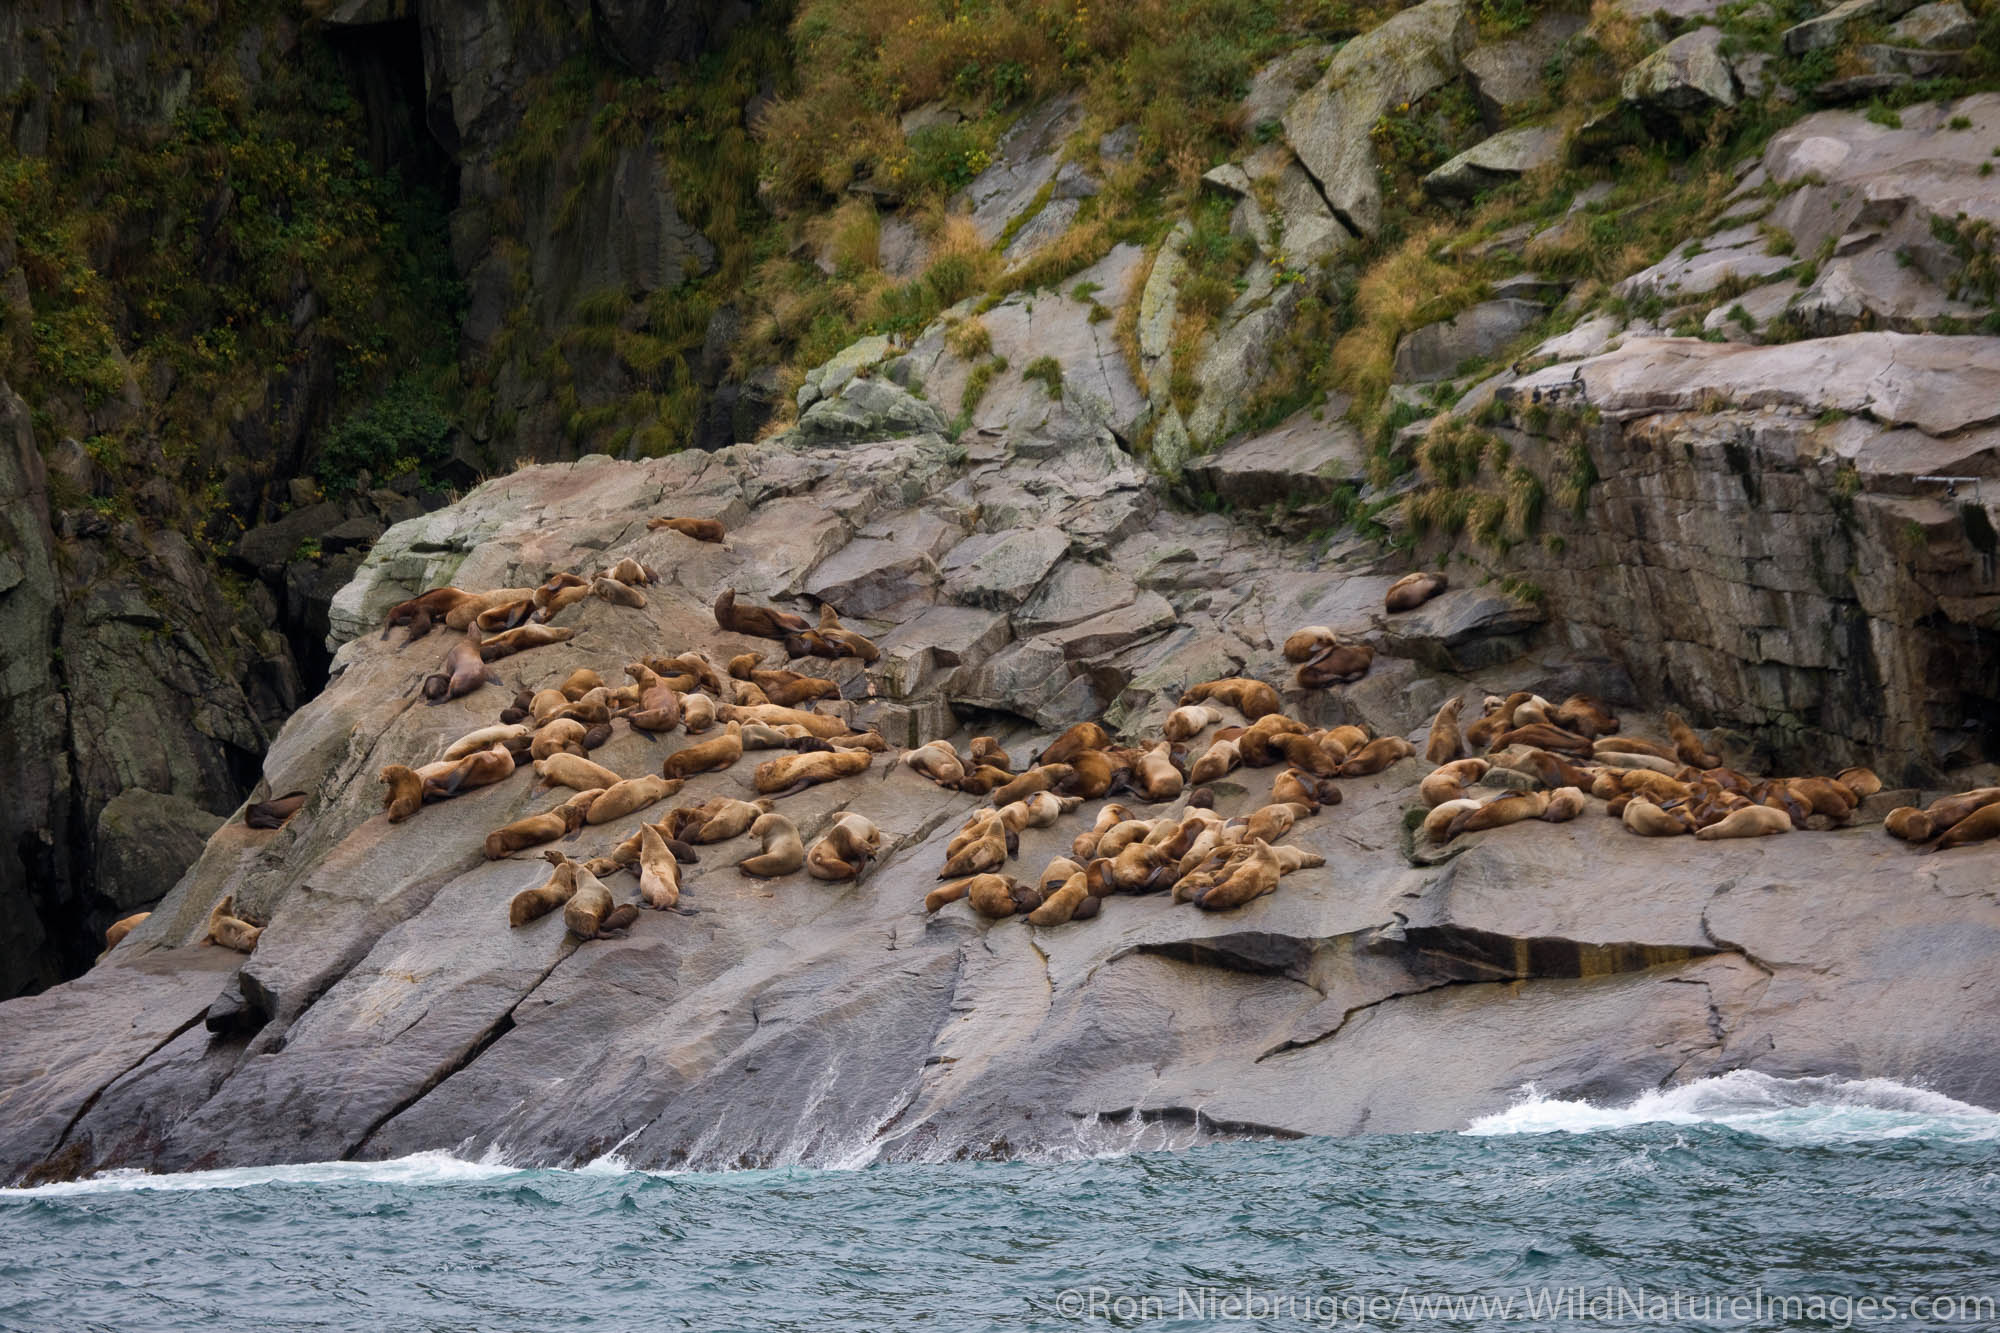 A rookery of Steller (Northern) Sea Lions on the Chiswell Islands, part of the Alaska Maritime National Wildlife Refuge, Kenai...